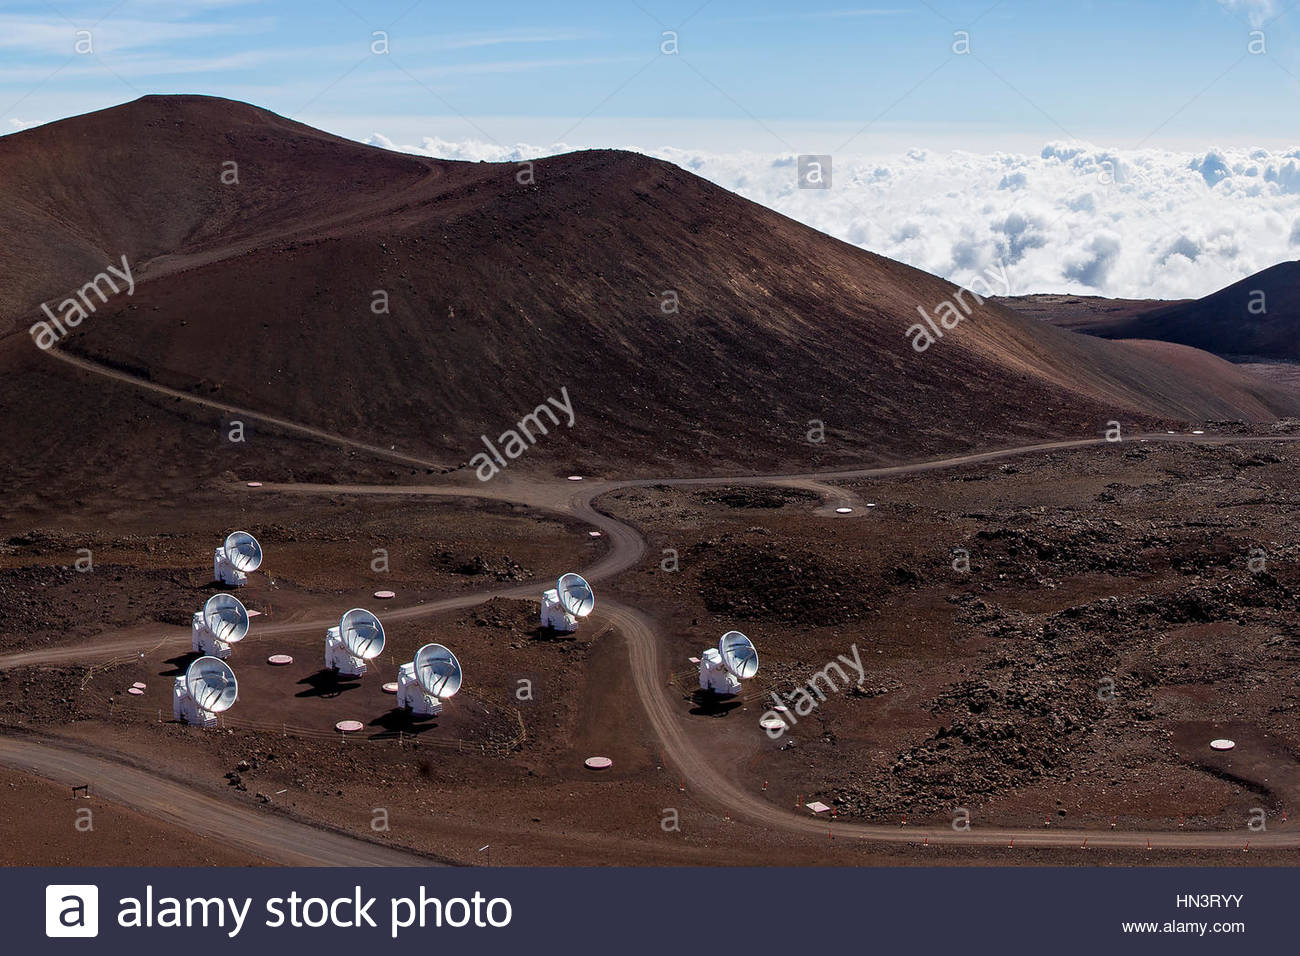 The Submillimeter Array, SMA, consists of several 6-meter dishes at Mauna Kea observatory. - Stock Image